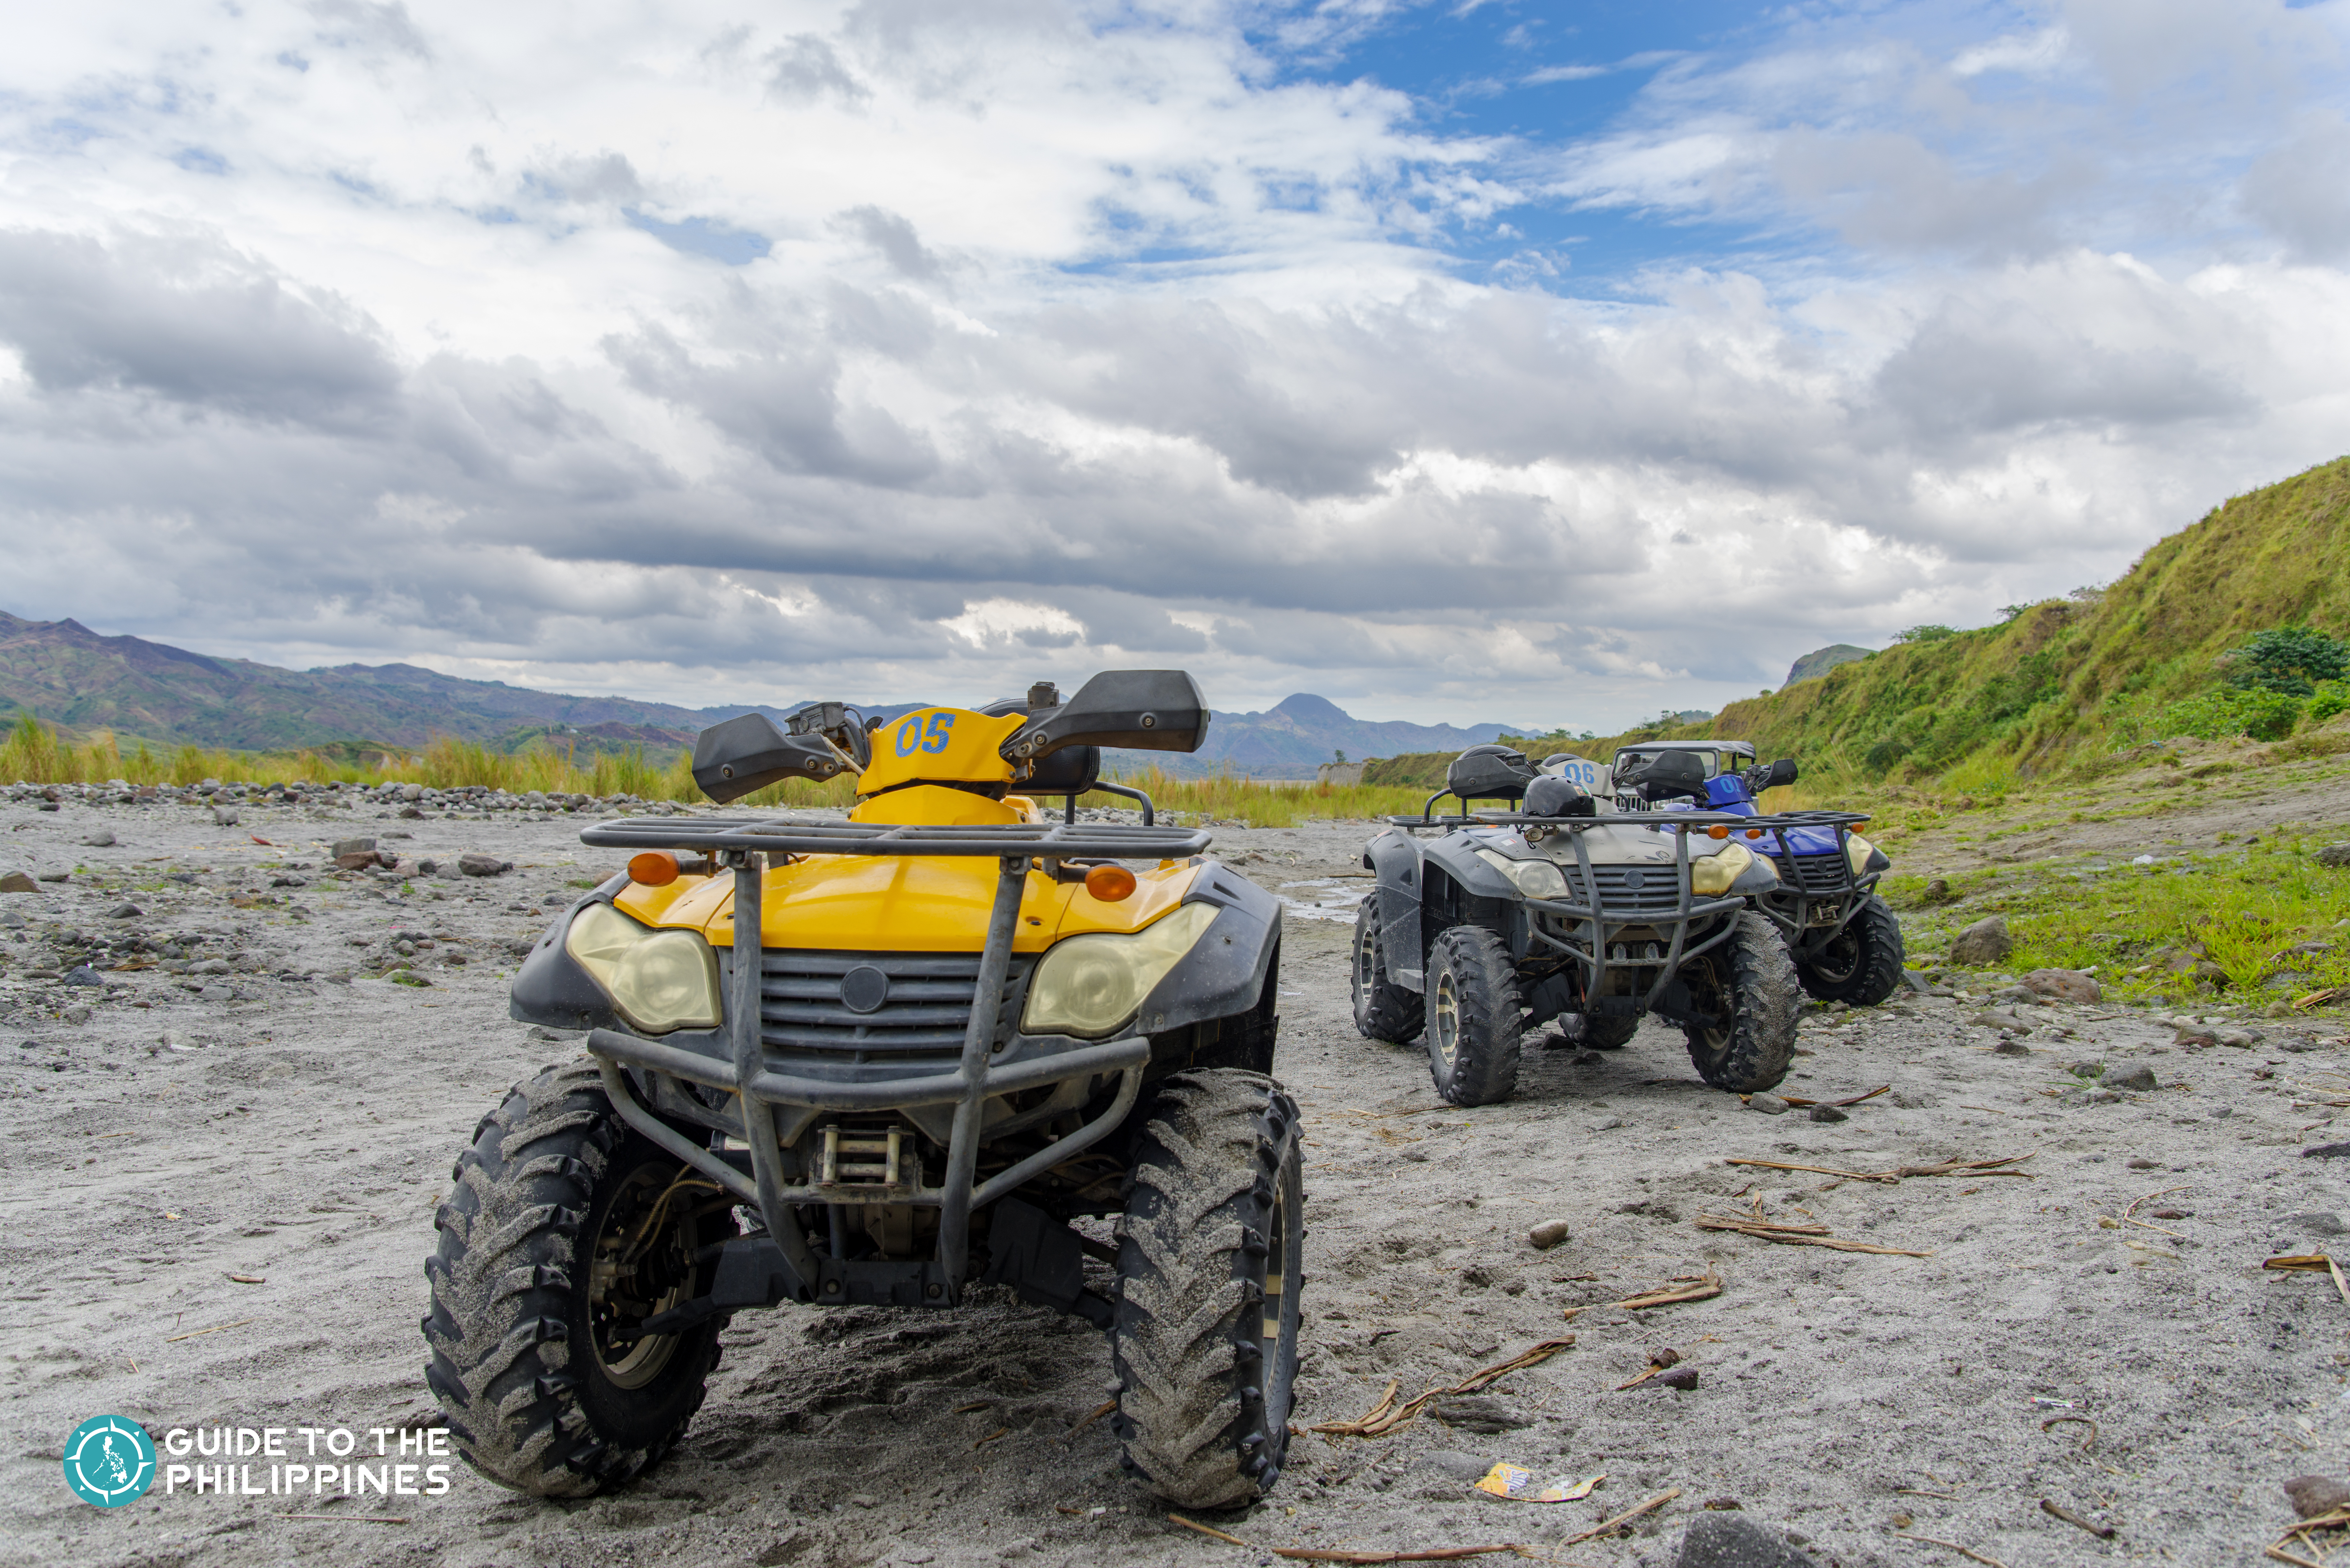 4x4 vehicles in Mt. Pinatubo